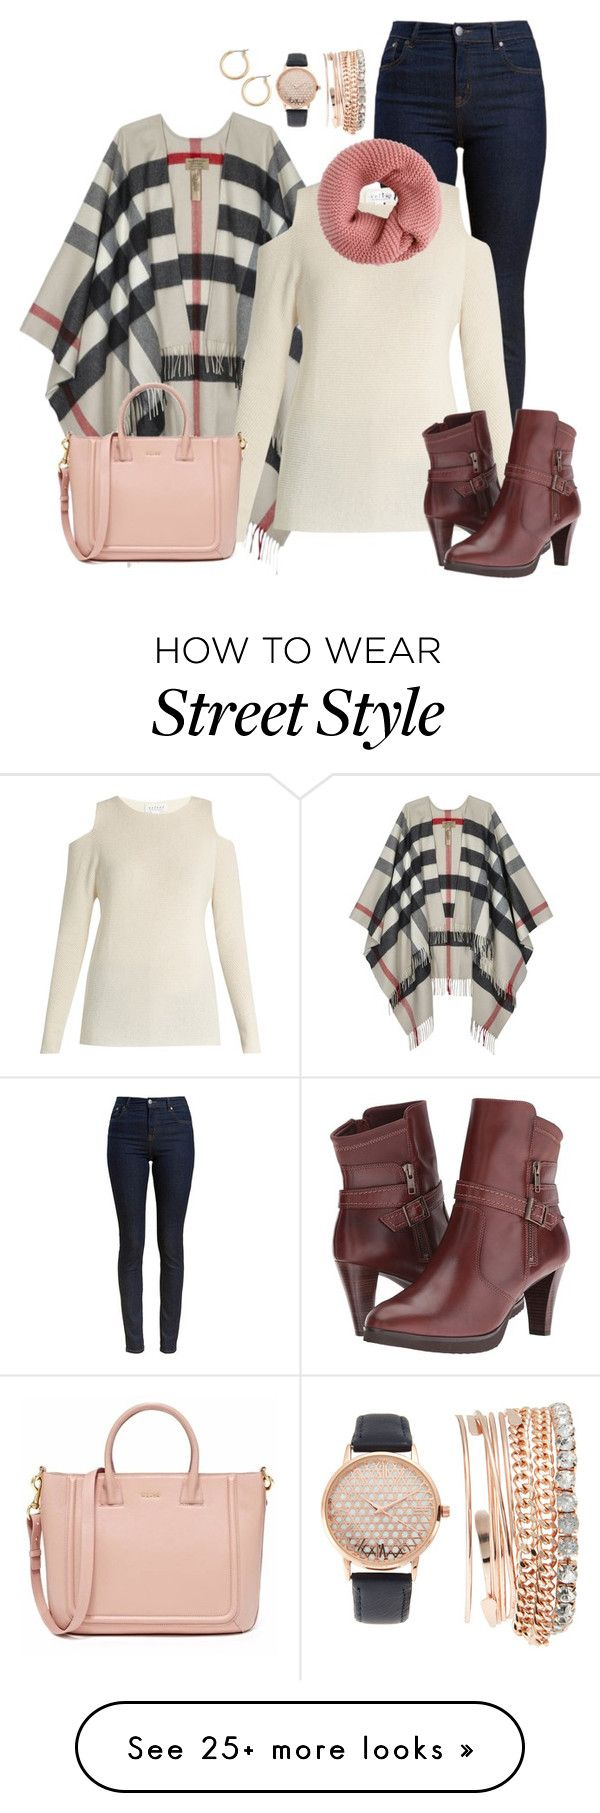 """""""A Winter's Style!!!"""" by gina-sotirop on Polyvore featuring Burberry, Barbour, Velvet by Graham & Spencer, Walking Cradles, Jessica Carlyle and Nordstrom"""